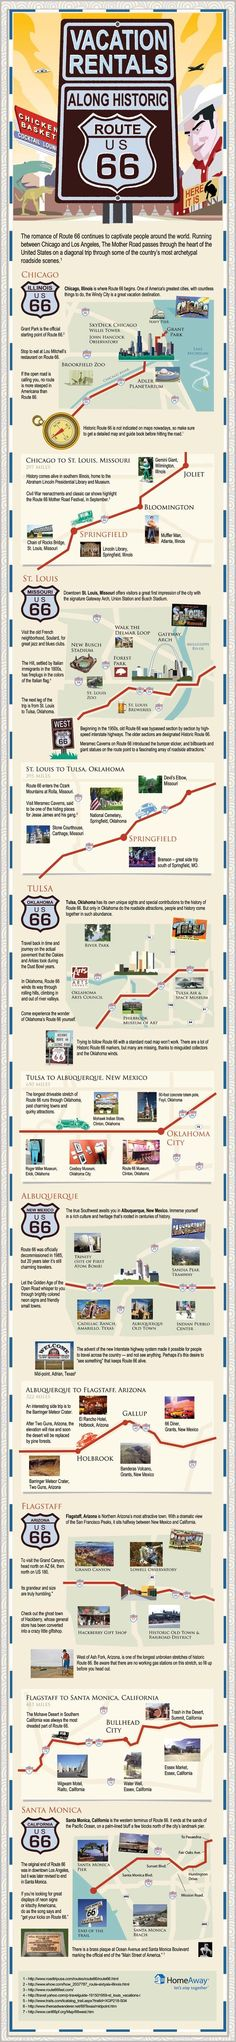 infographic - vacation rentals and things to do along historic route 66